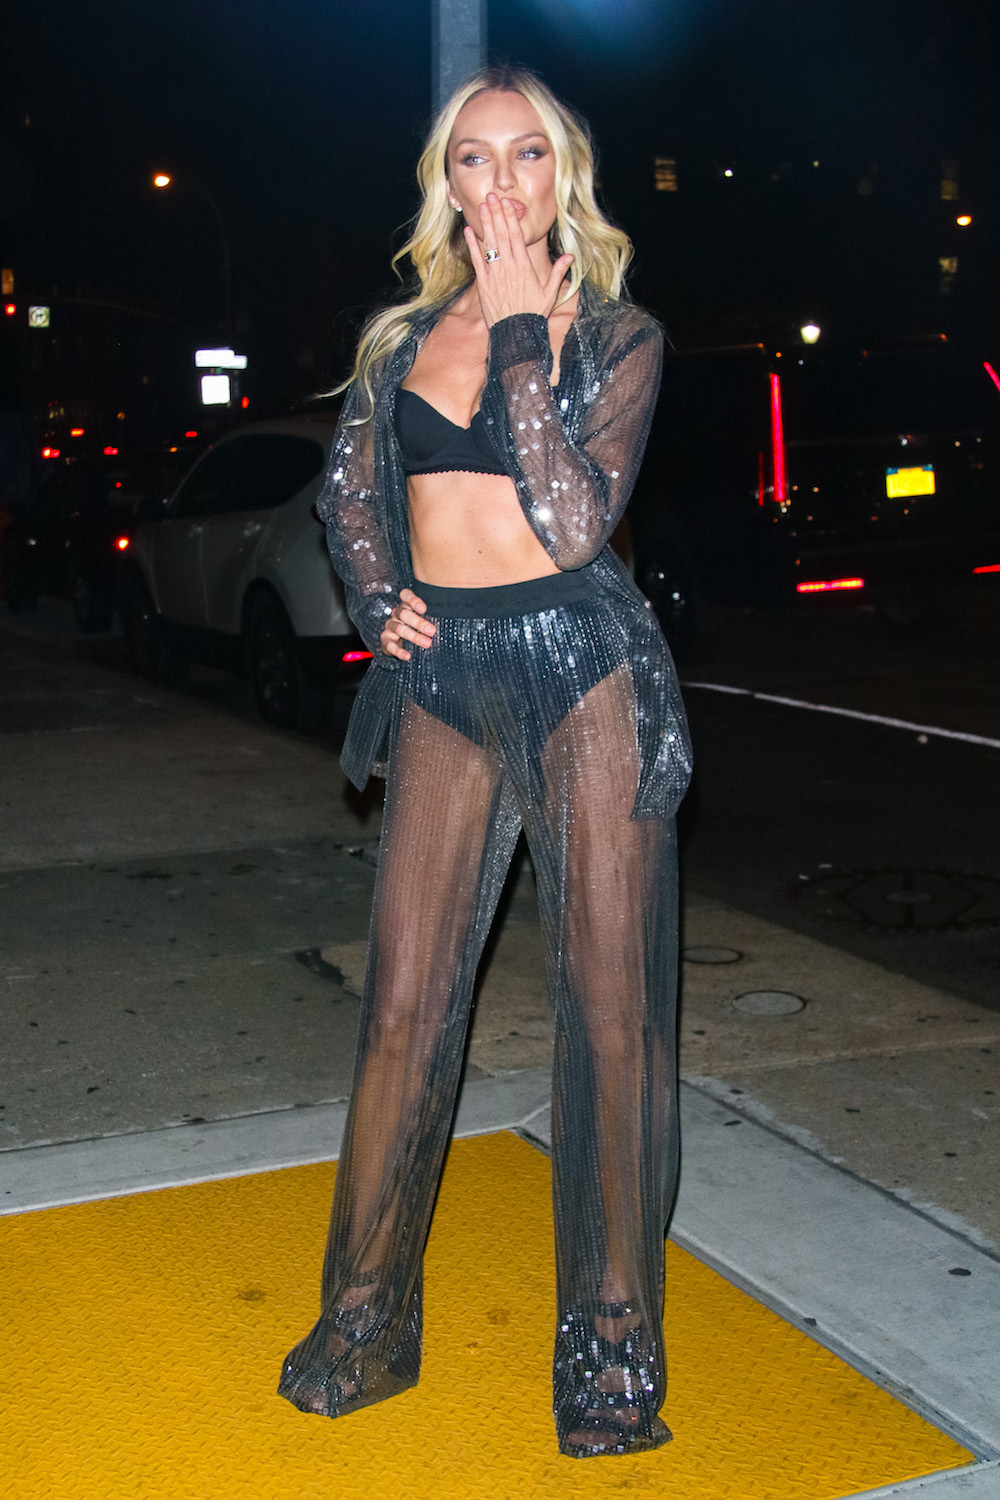 Candice Swanepoel in New York City After the Victoria's Secret Fashion Show